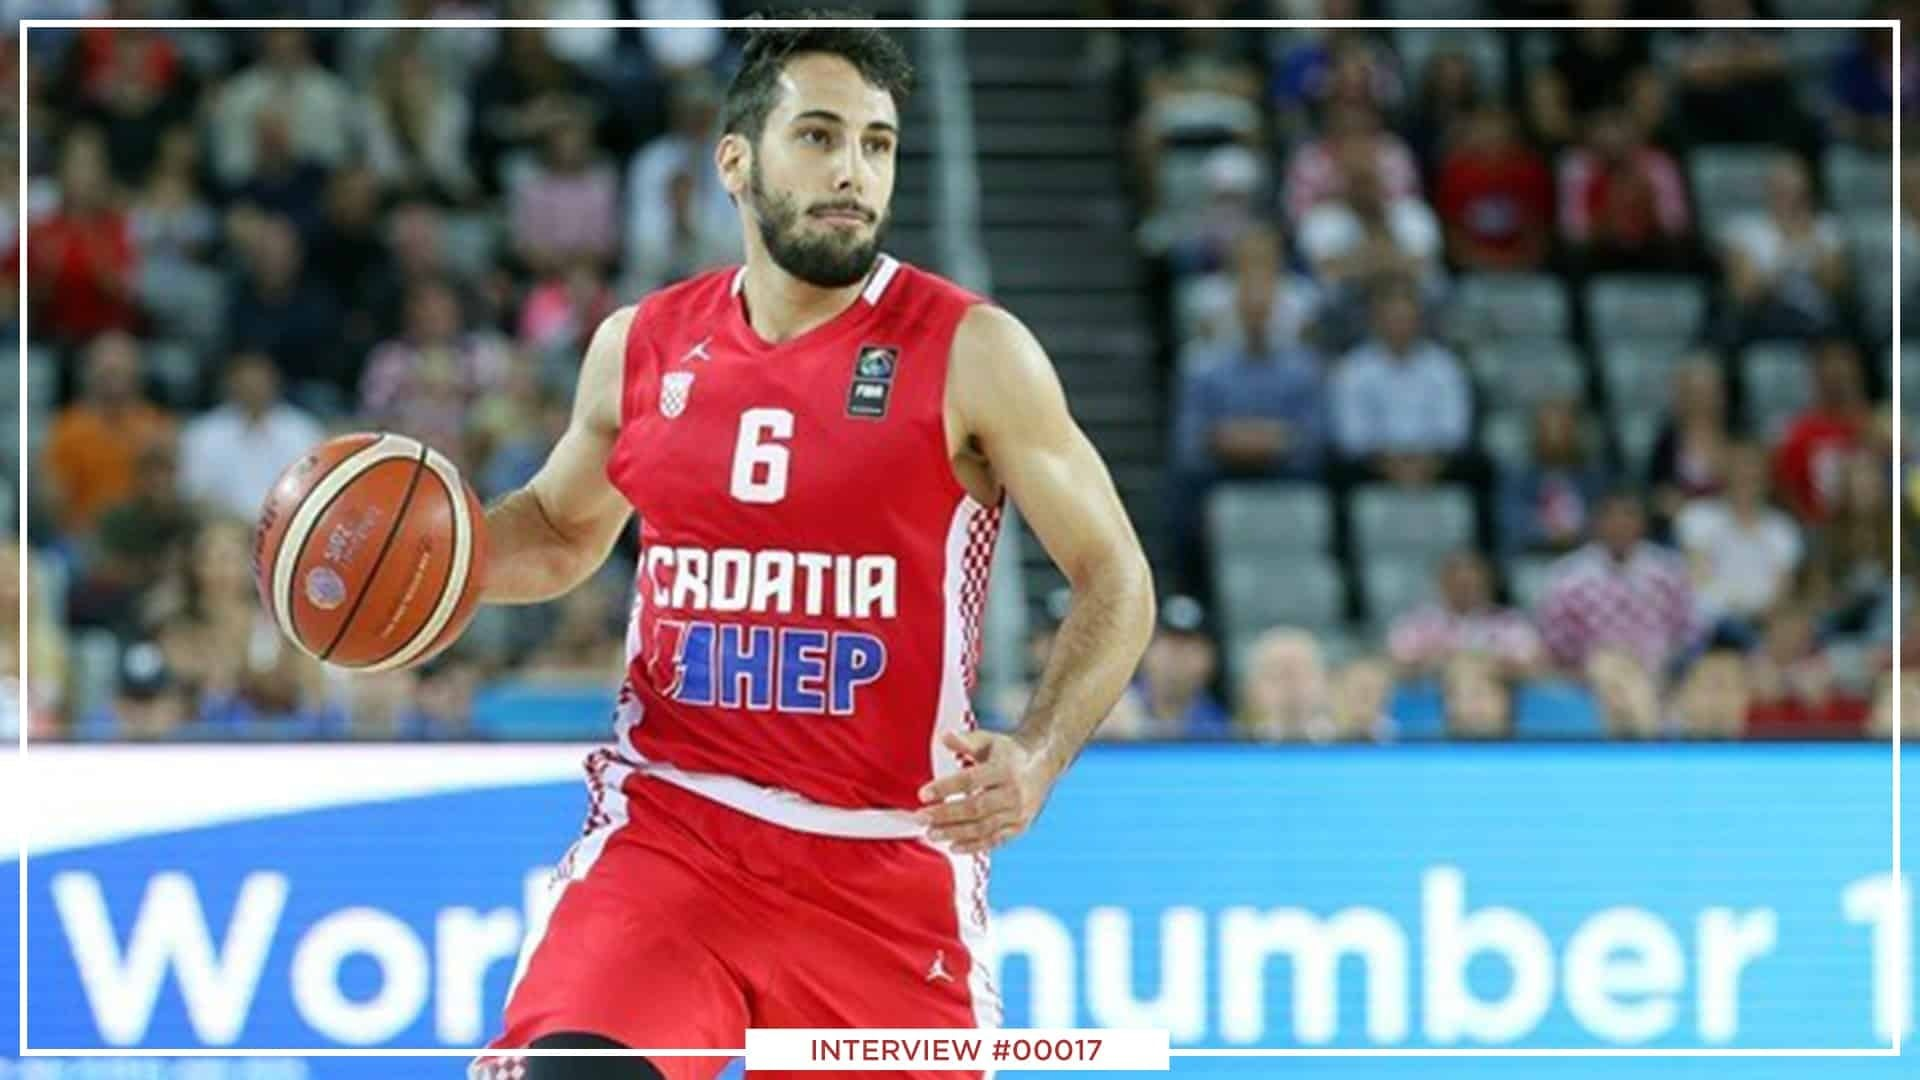 Rok Stipcevic wearing a red jersey and holding a basketball.